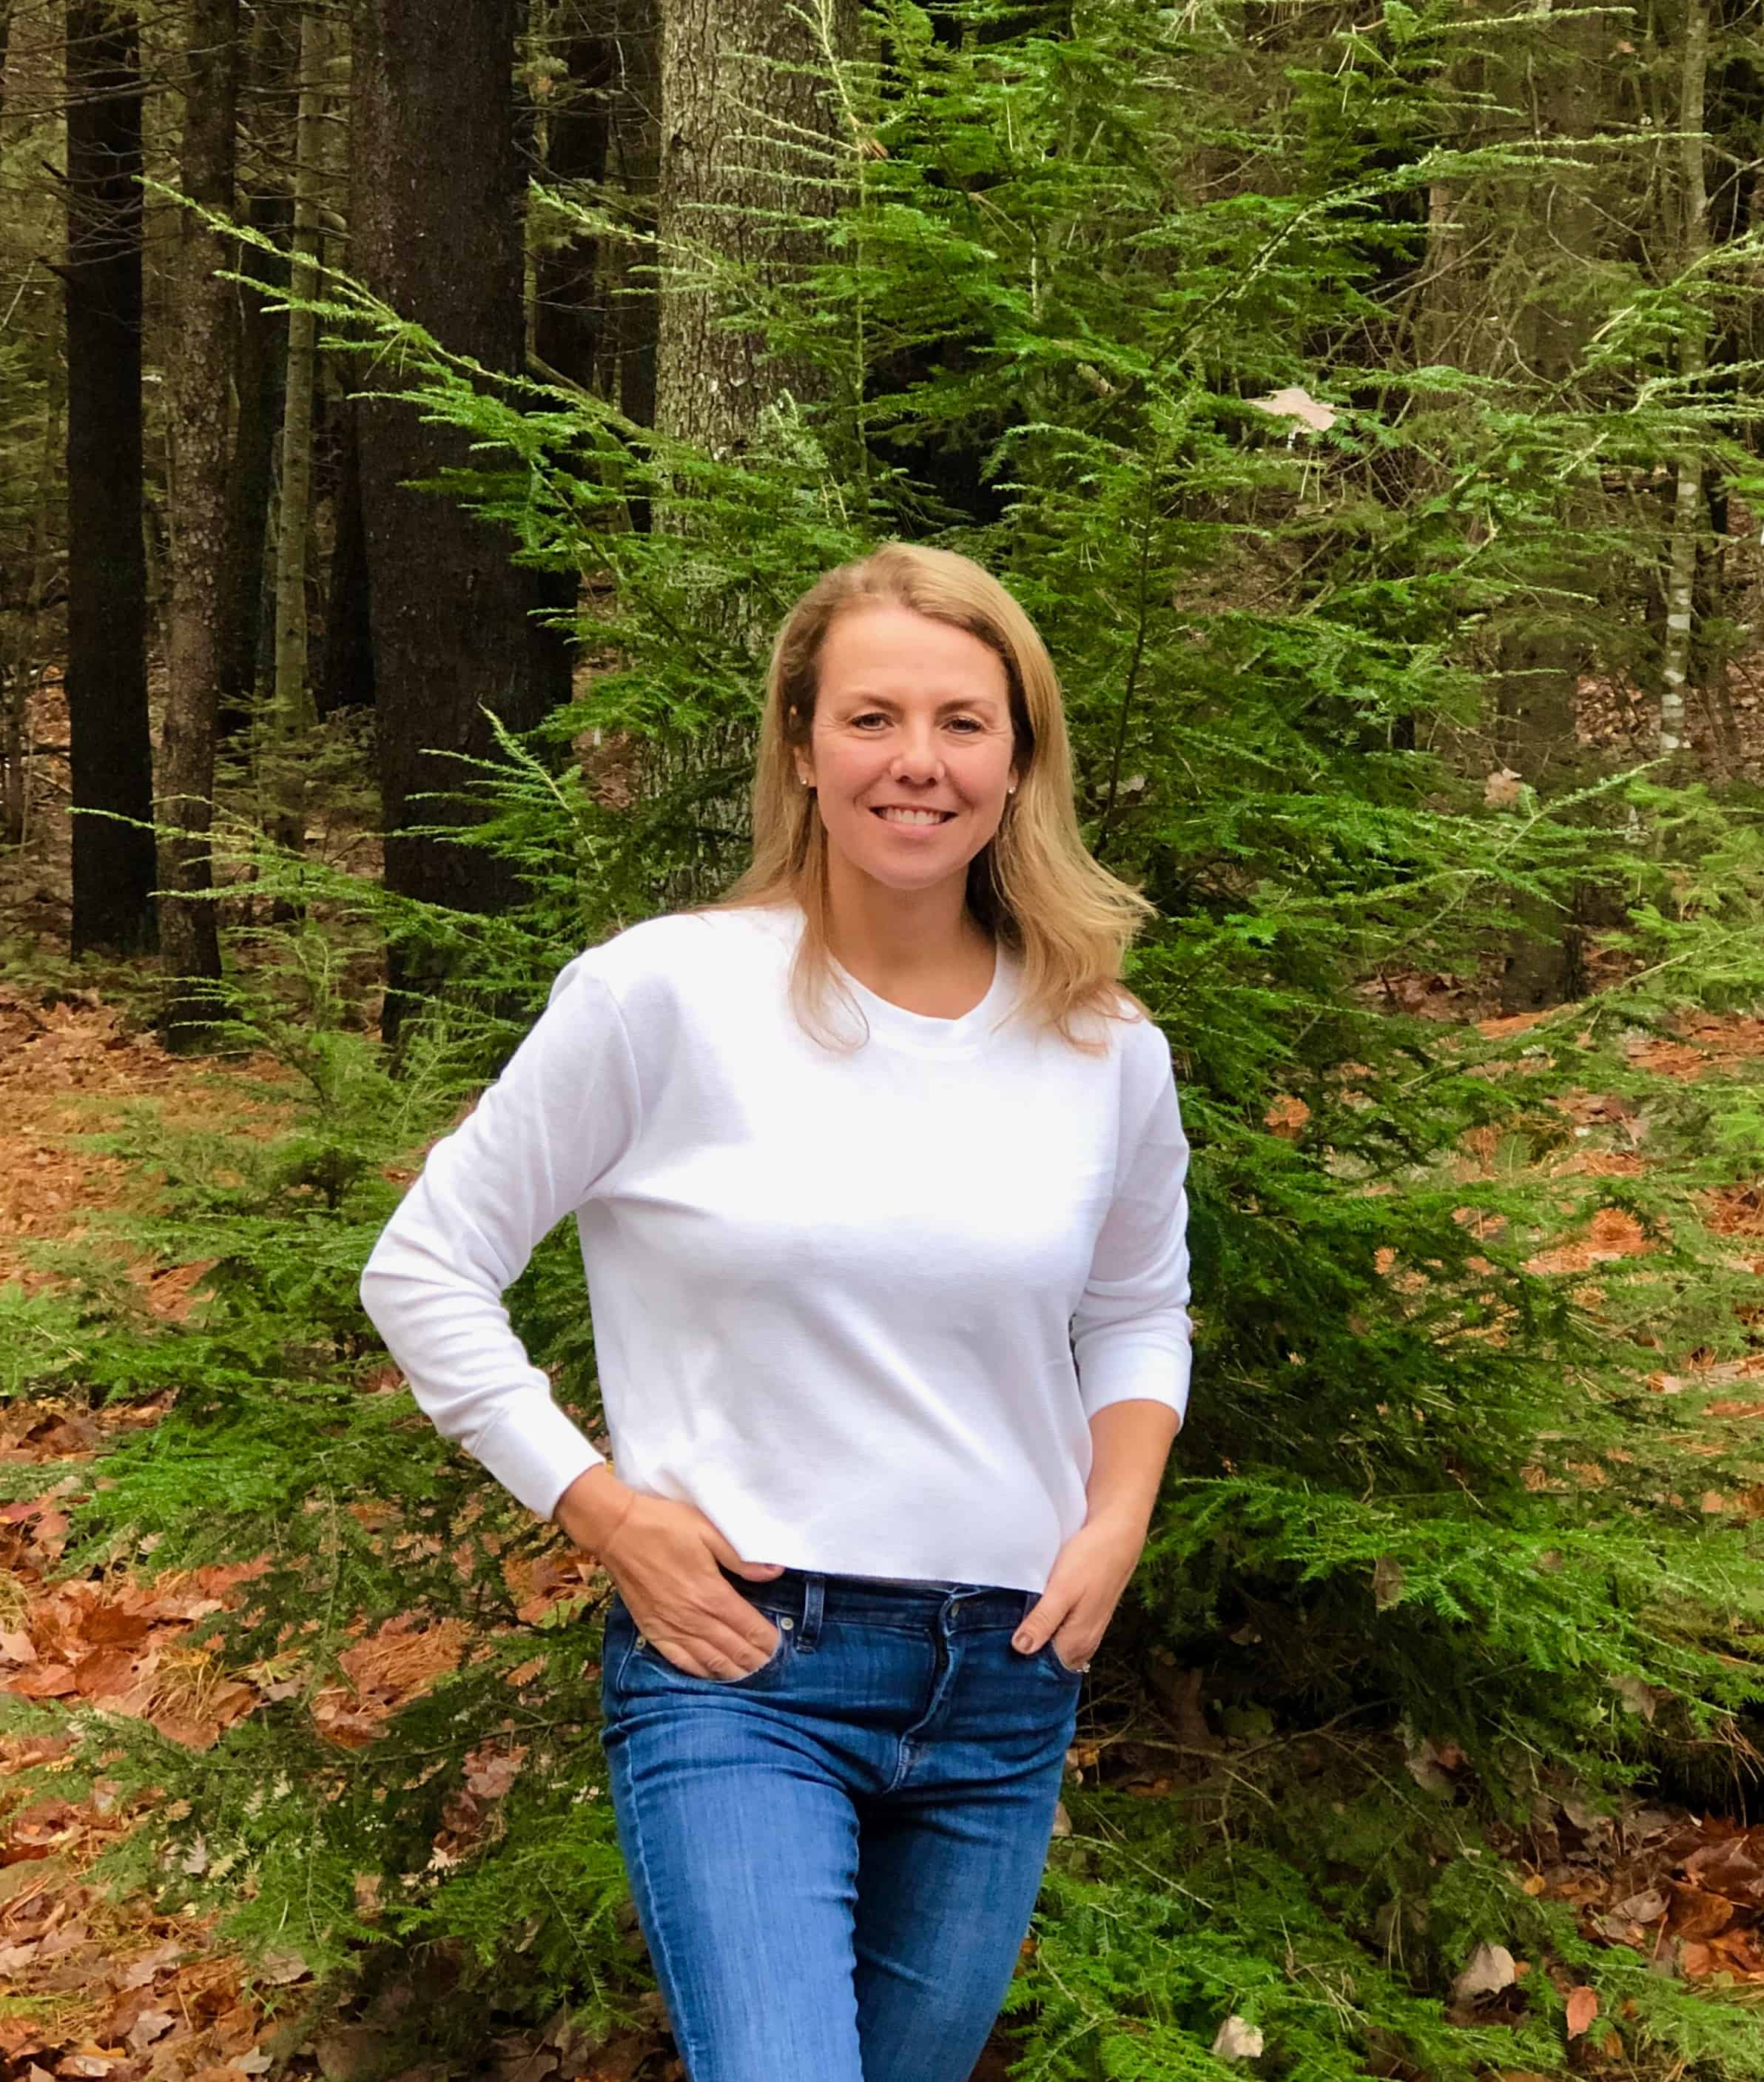 Beautiful blond woman in white thermal crop top and denim jeans standing outside by tree in Maine during the Fall.